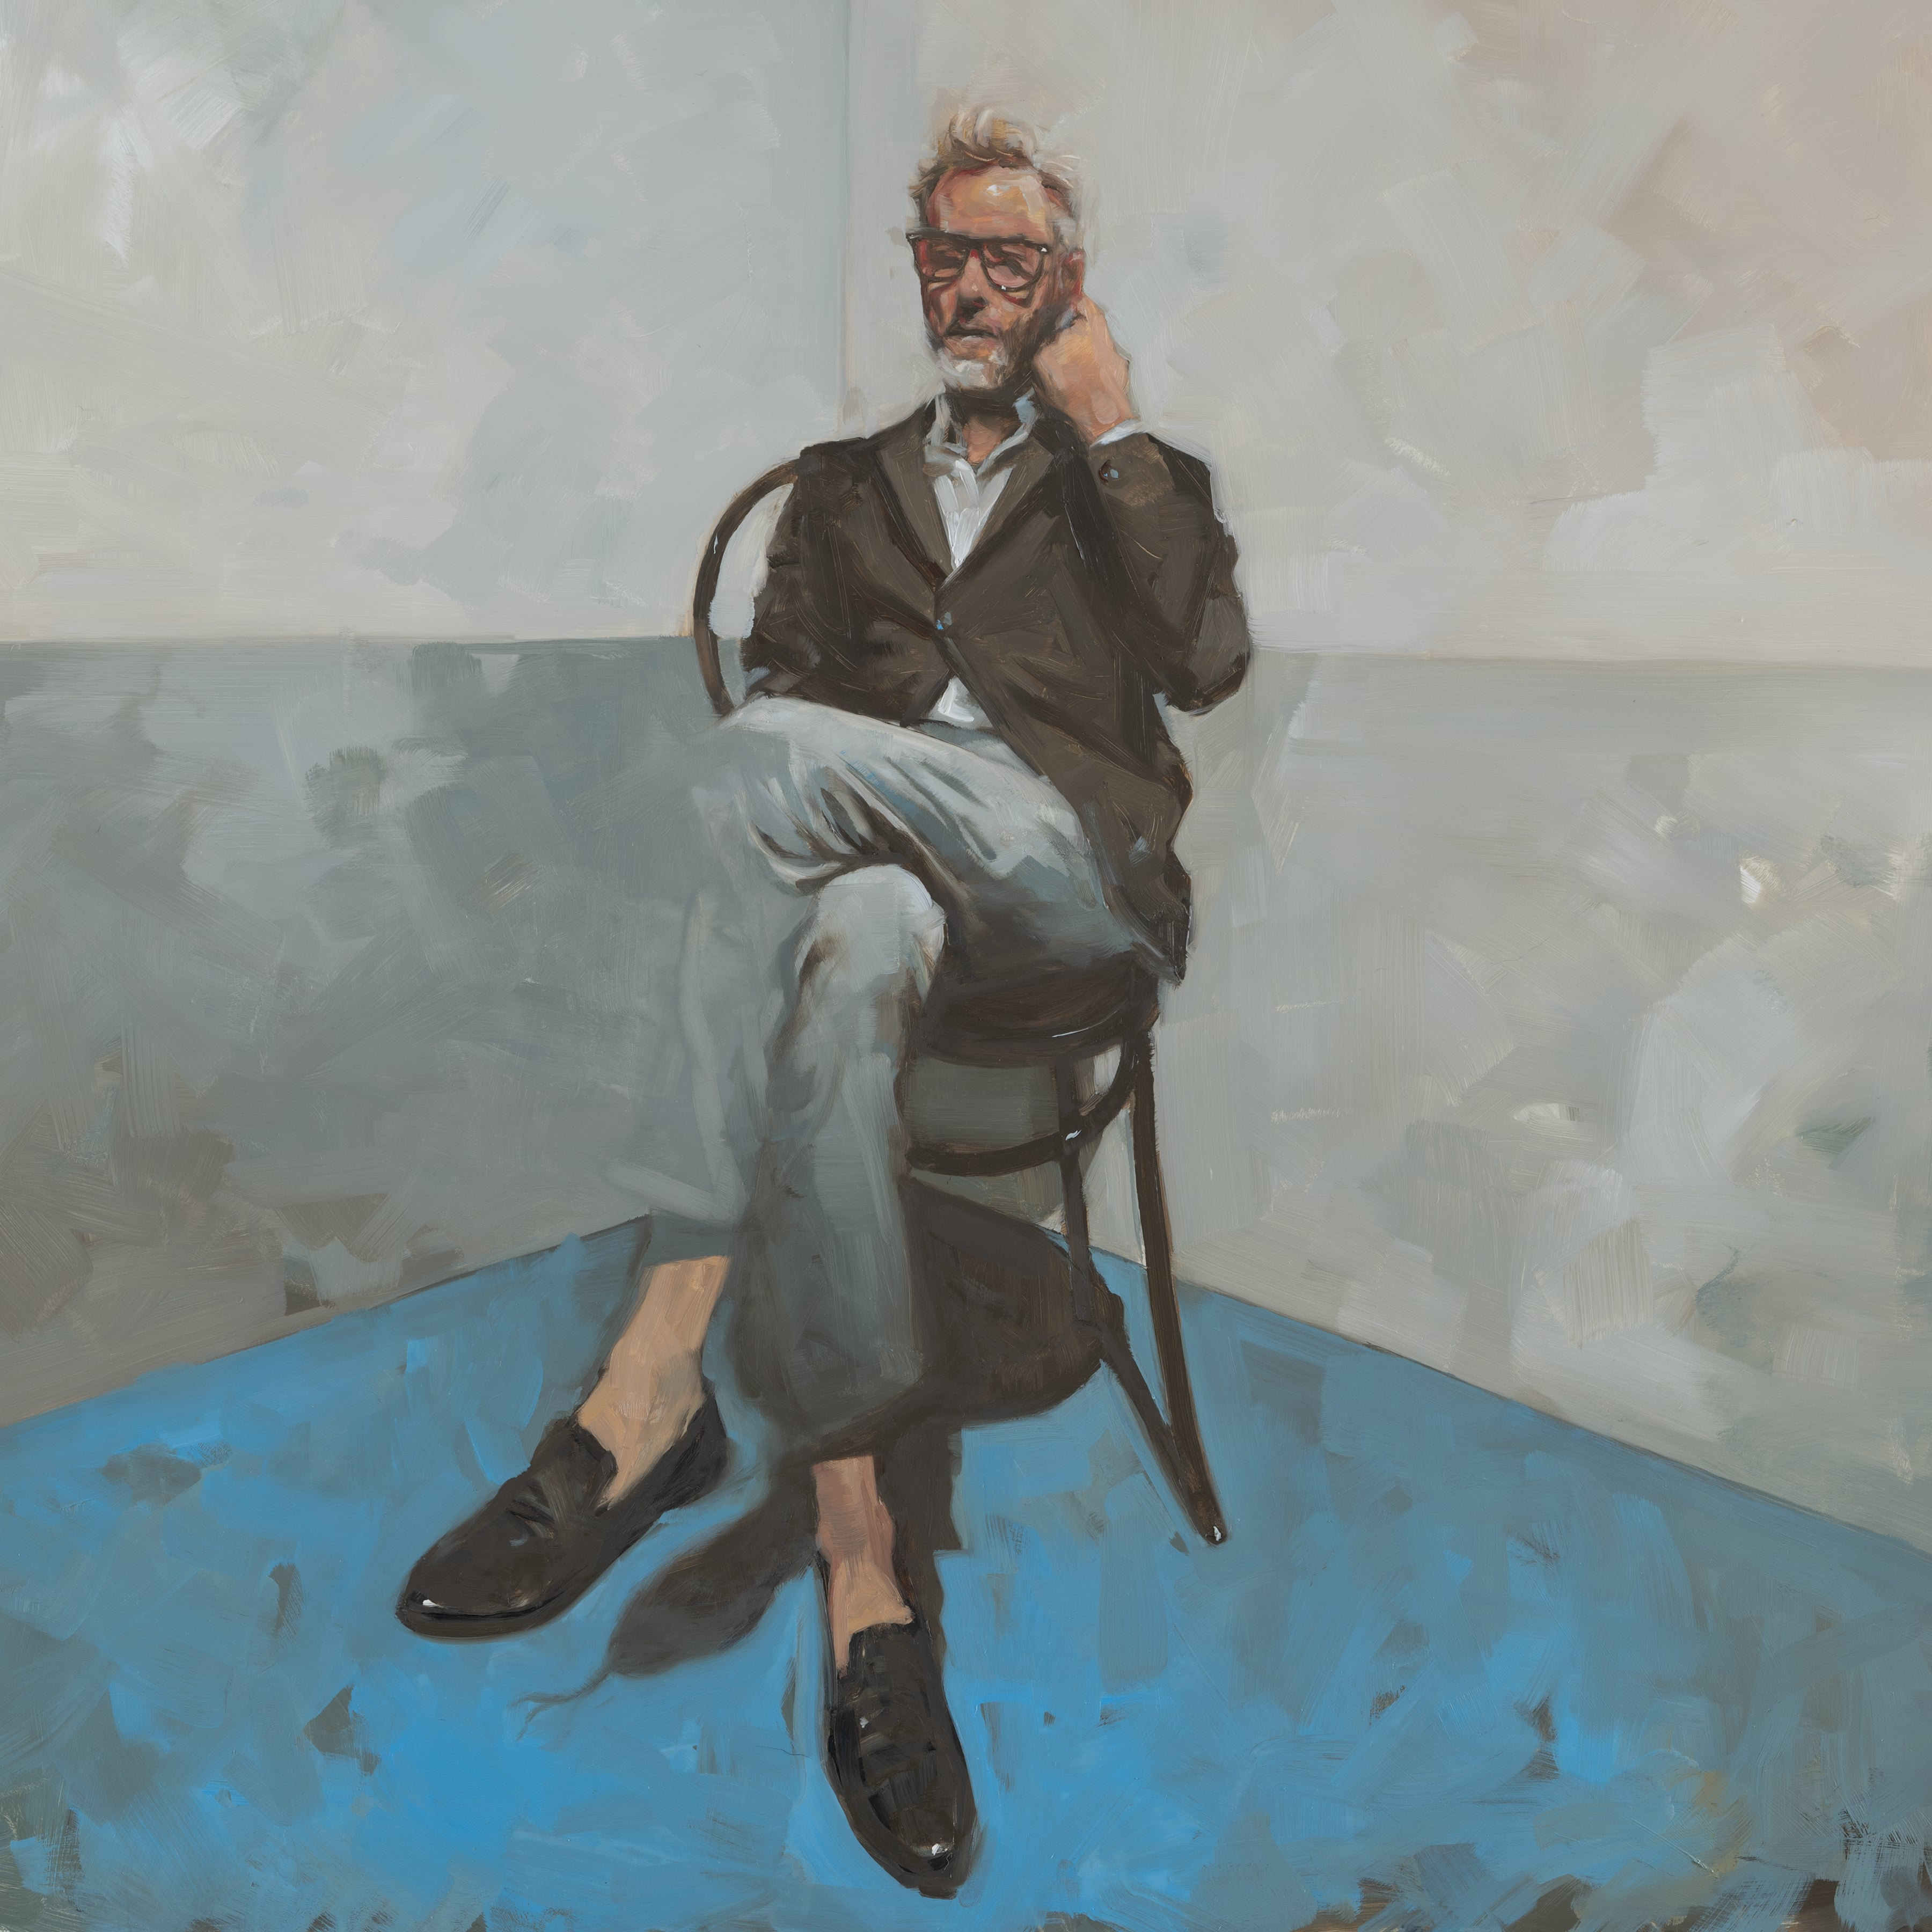 Matt Berninger of The National's Debut solo record Serpentine Prison out now